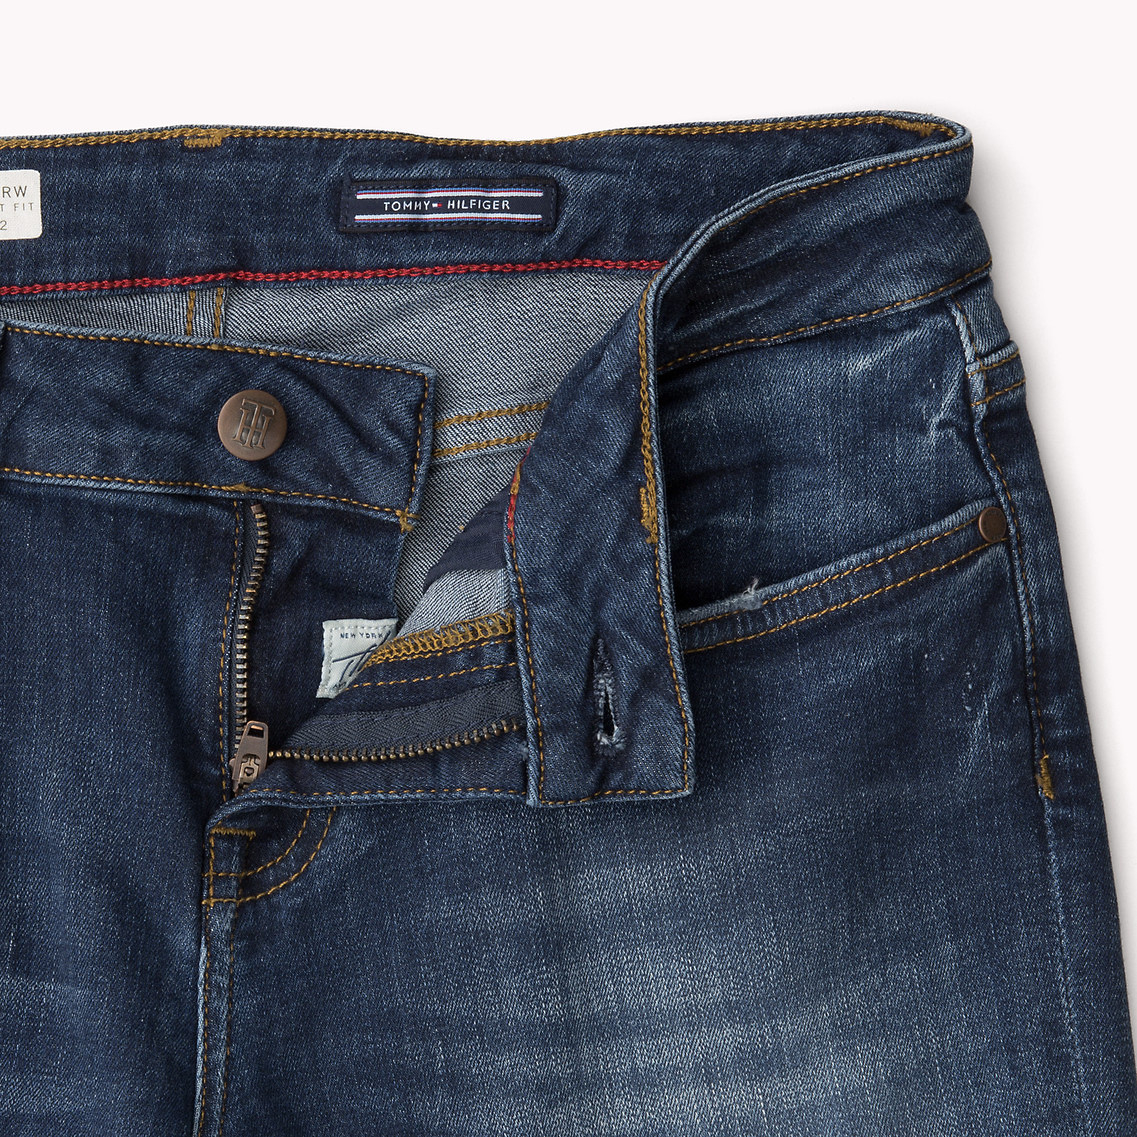 837fbfc6 Tommy Hilfiger Rome Straight Fit Jeans in Blue - Lyst